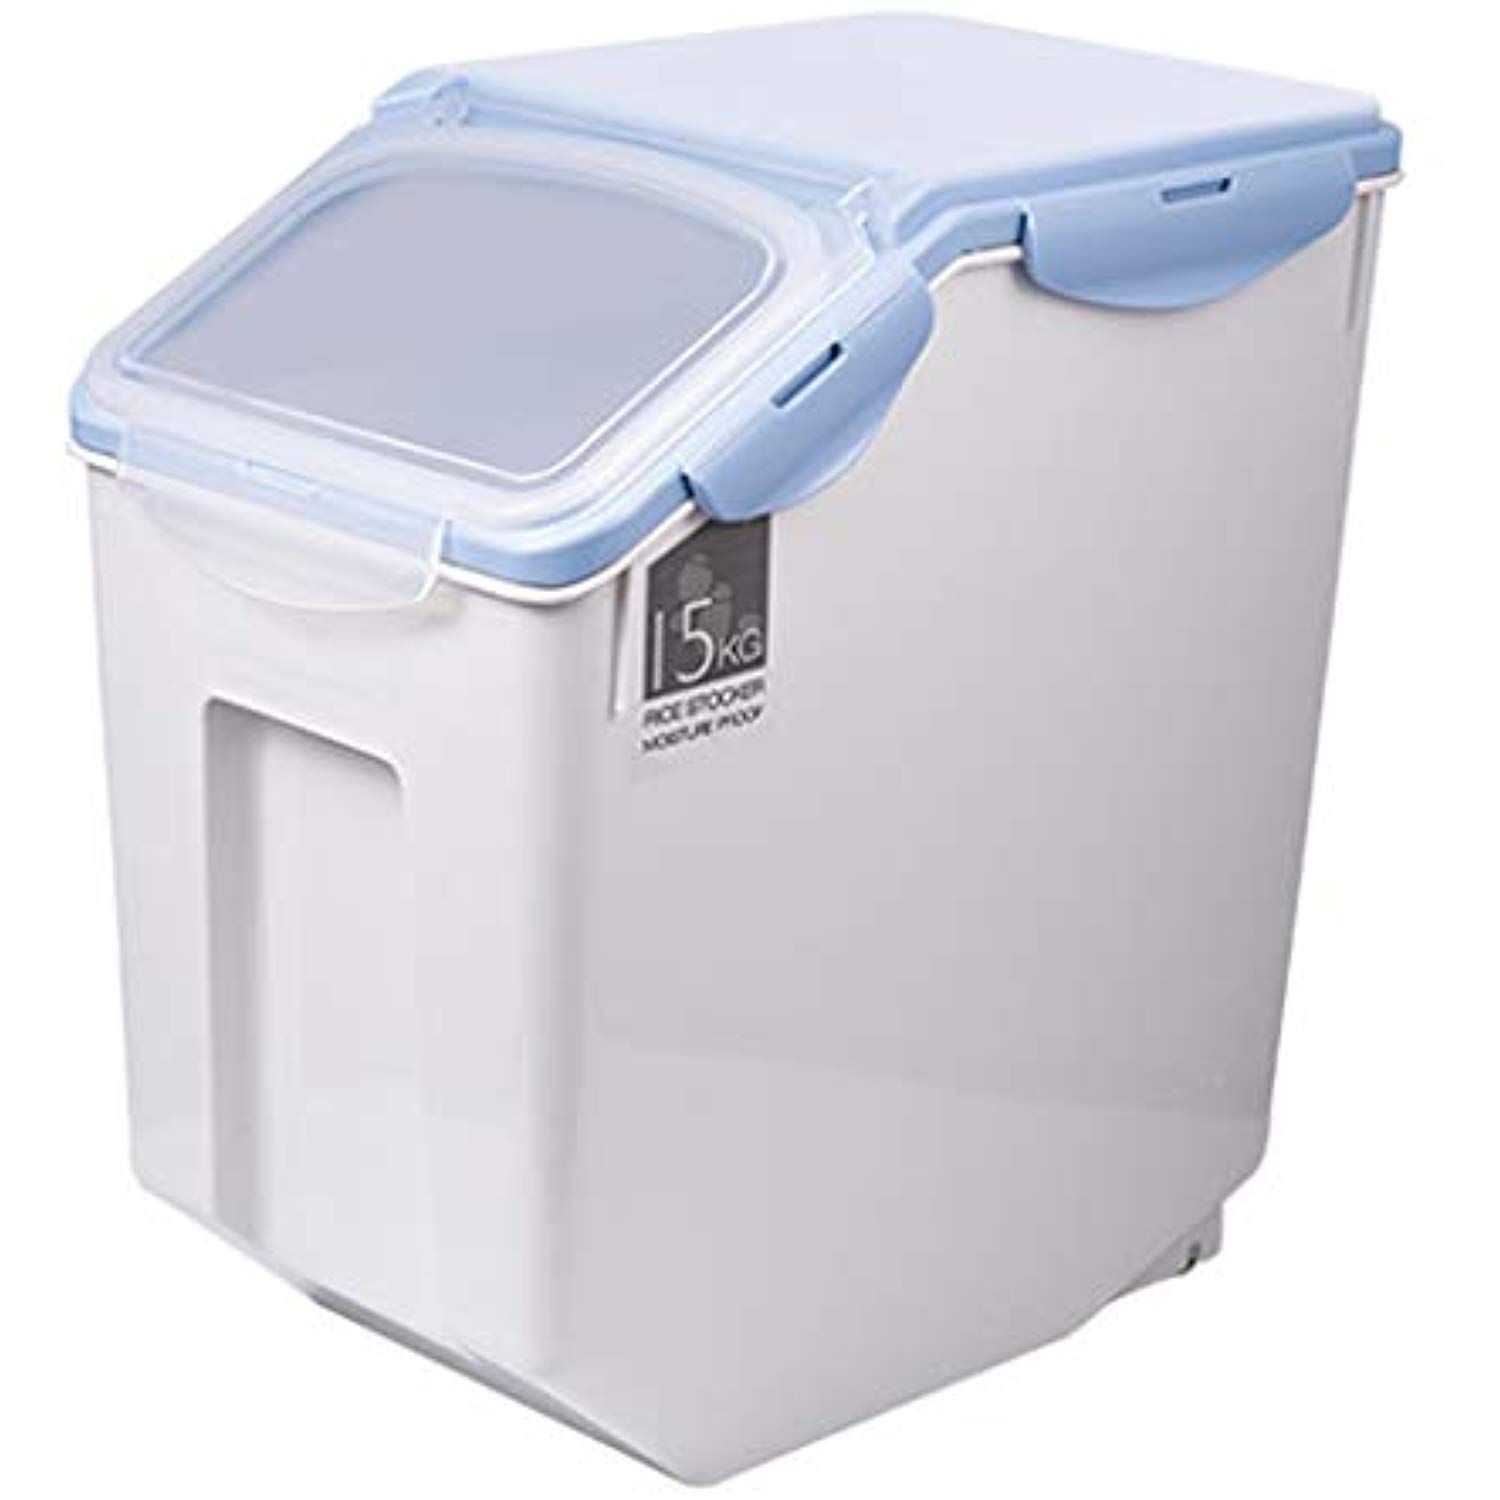 Jlxl Pet Food Container 10l Dry Storage Dog Cat Grain Bin Seal Bucket Moisture Insect Control For High Capacit Pet Food Container Dog Food Storage Food Animals